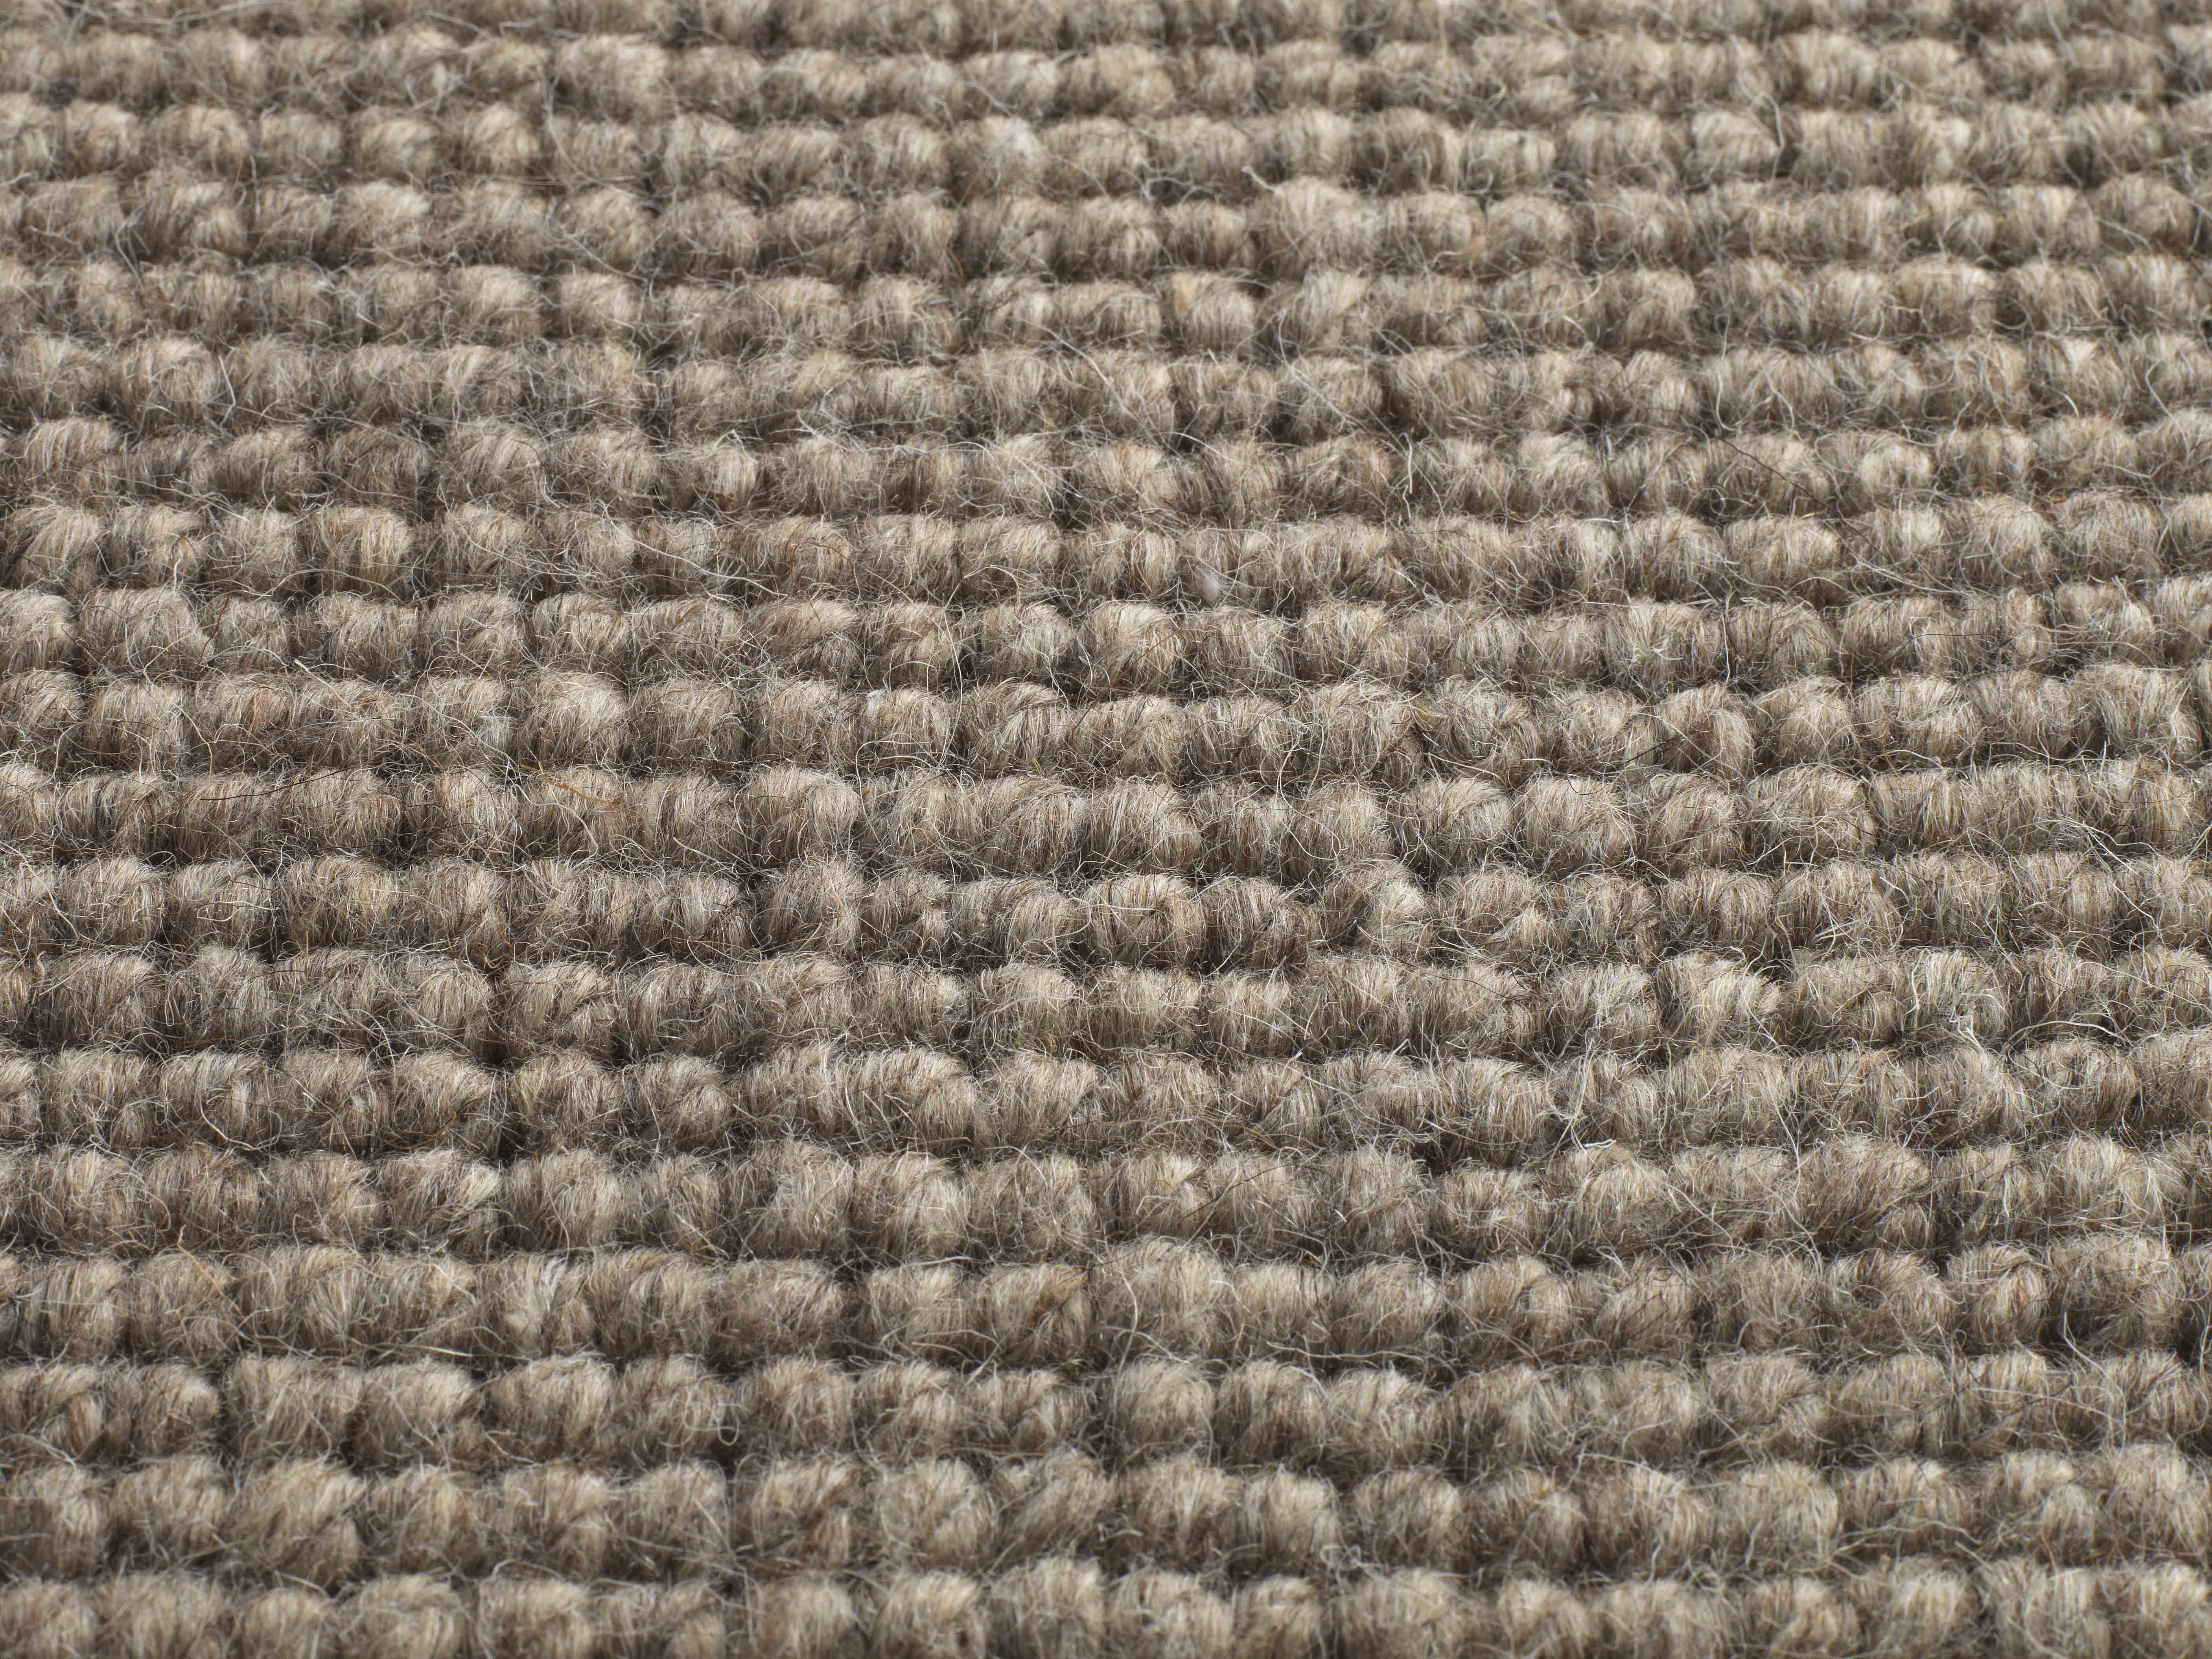 Jacaranda Carpets Chandigarh Oatmeal broadloom carpet 4 & 5 meter 100% undyed wool